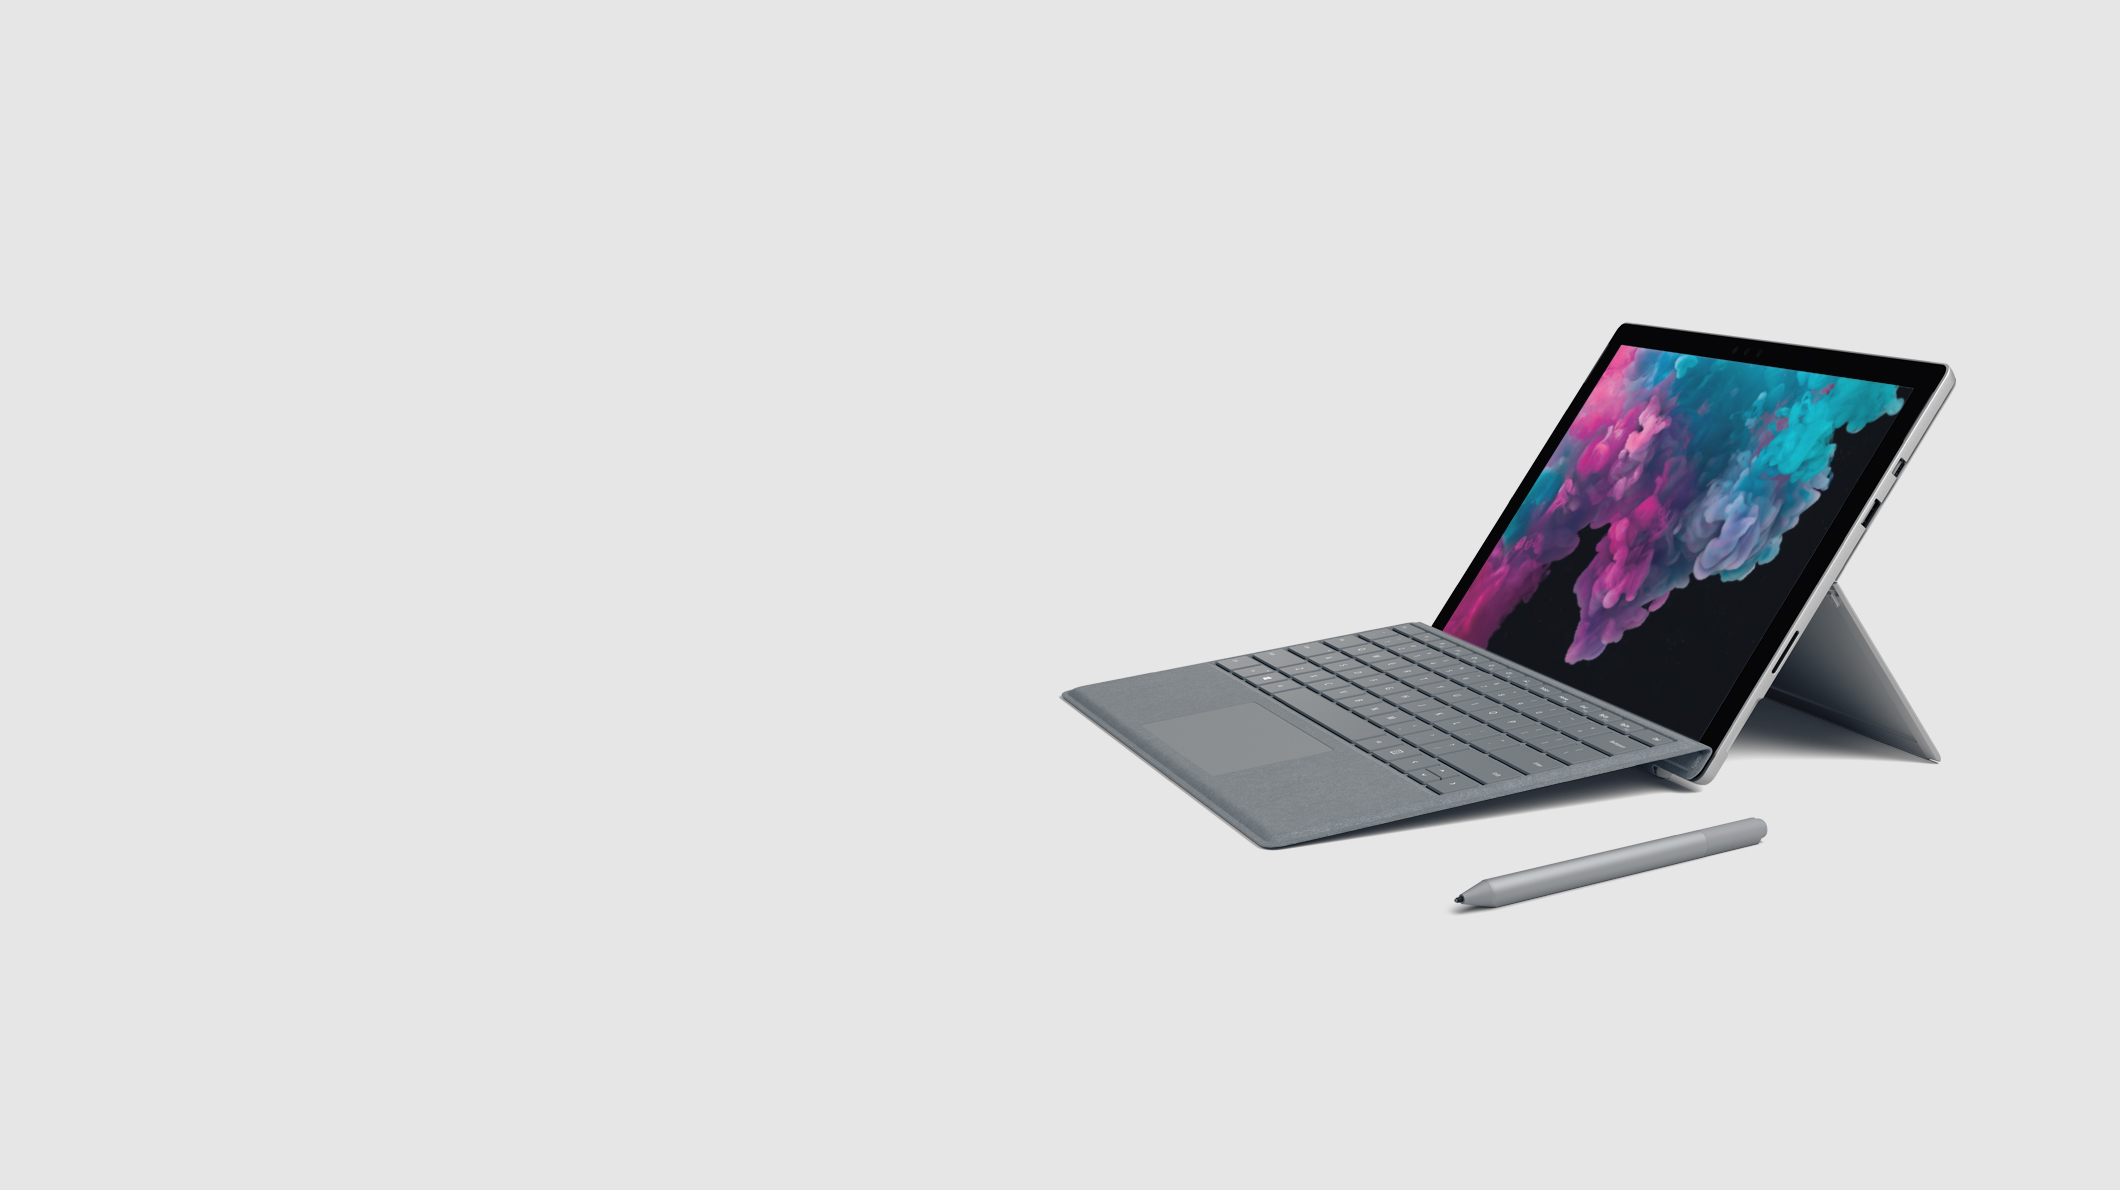 A Surface Pro 6 with a platinum Type Cover and Surface Pen